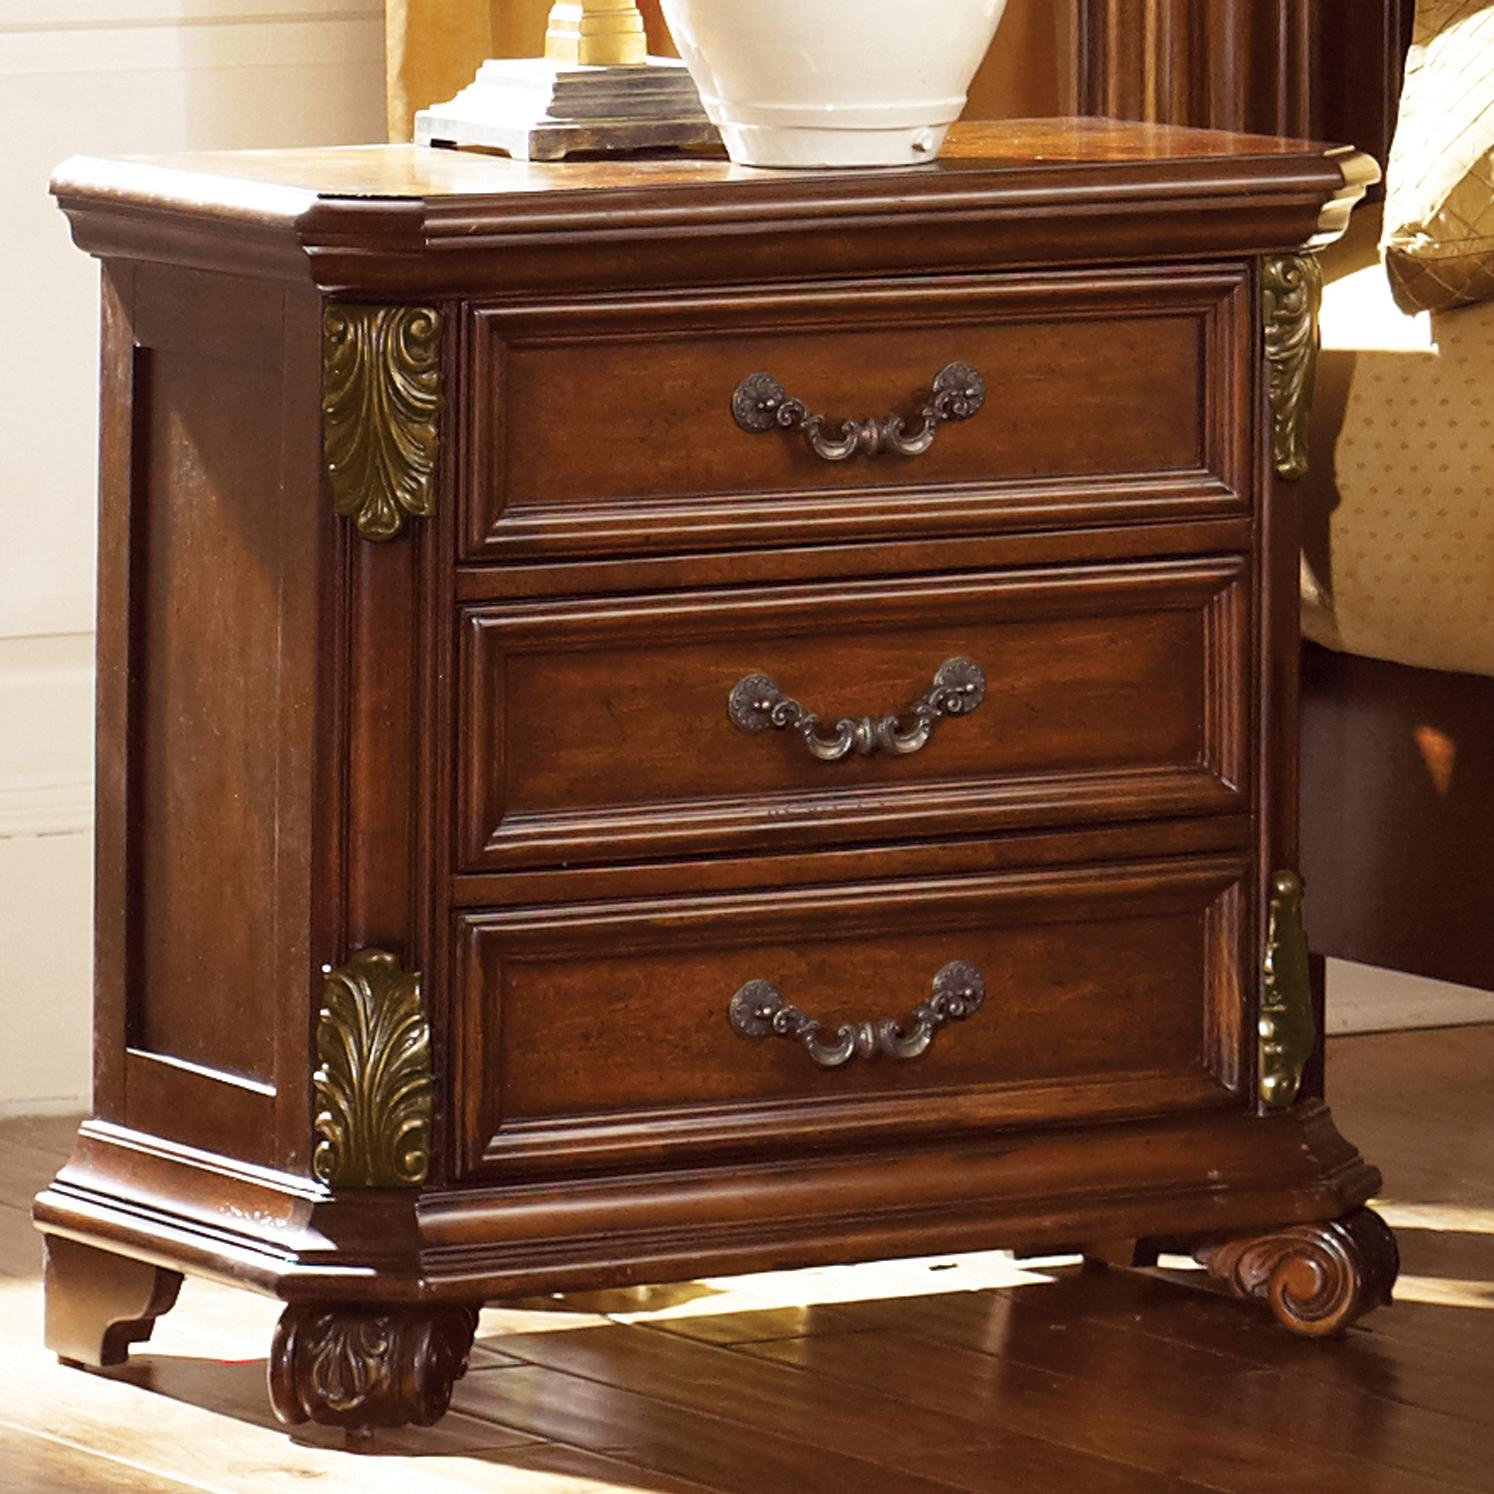 Vendor 5349 Messina Estates 737 Br61 Nightstand With 3 Drawers Becker Furniture World Night